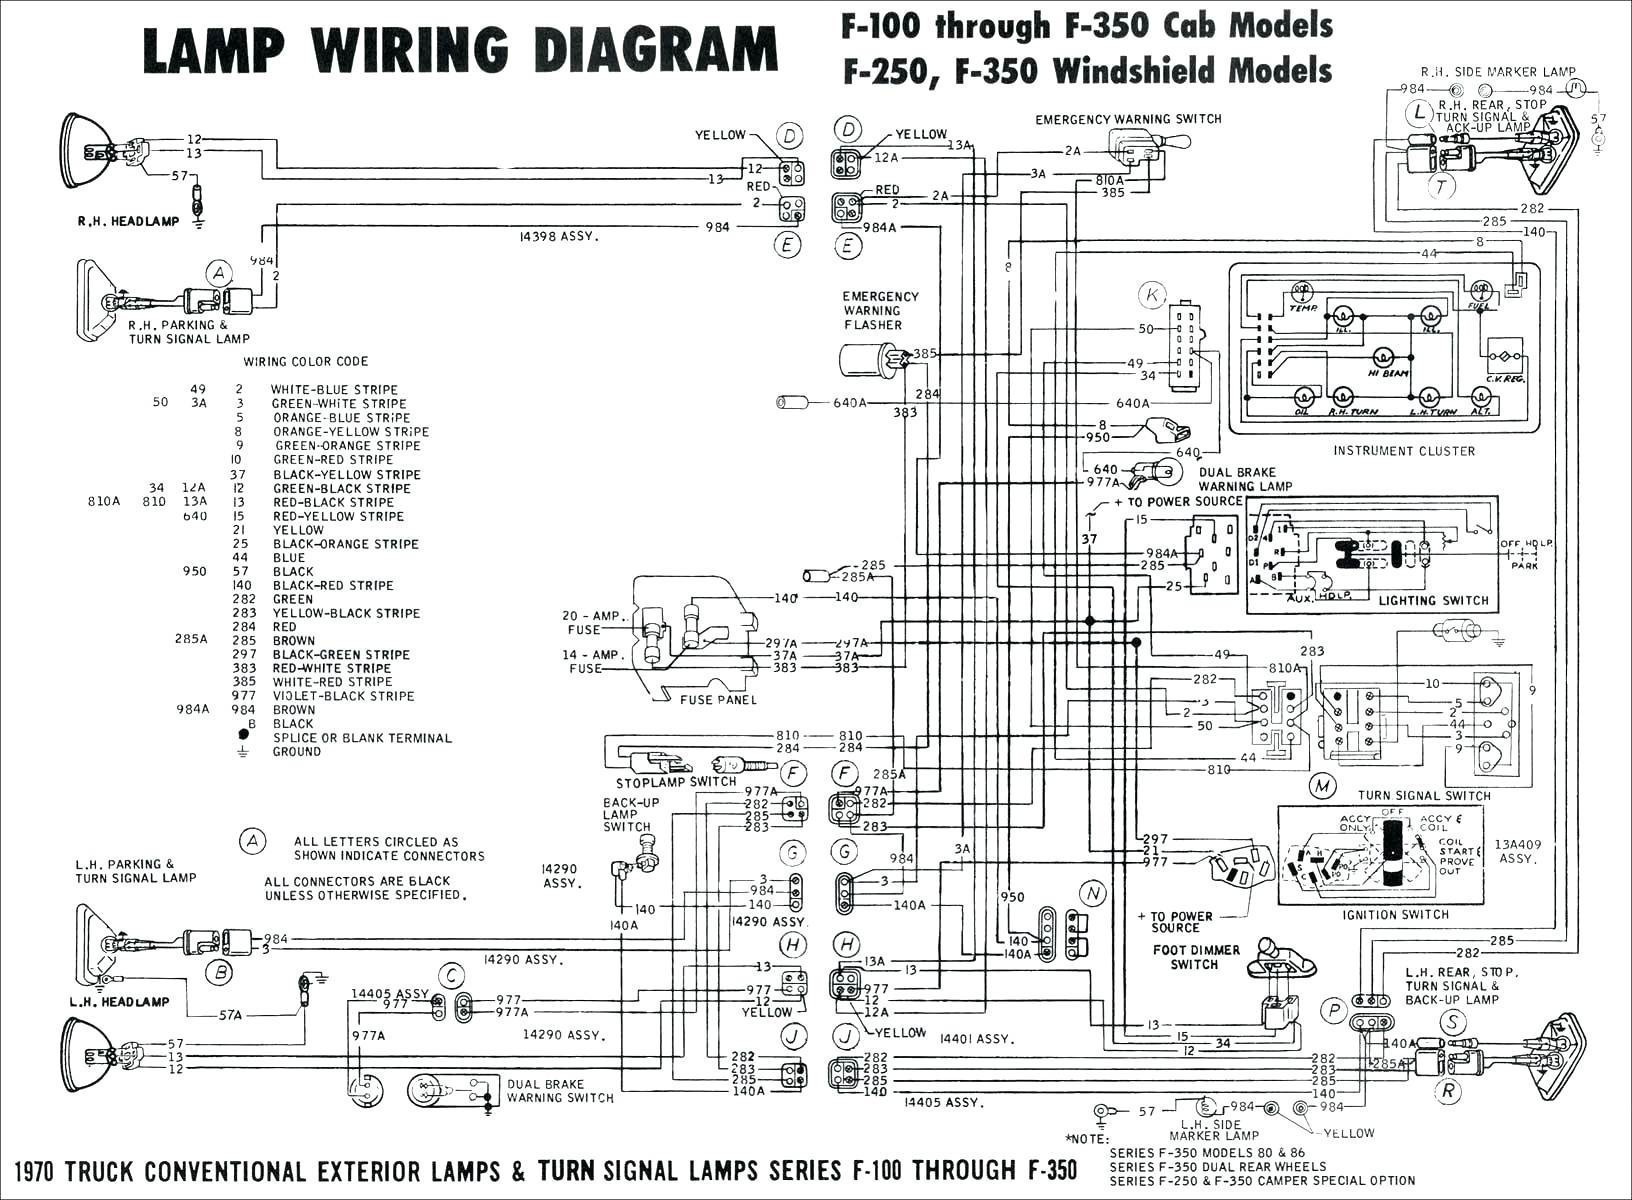 2002 Jeep Grand Cherokee Engine Diagram 2 Basic Ignition System Wiring Diagram New 2002 Jeep Grand Cherokee Of 2002 Jeep Grand Cherokee Engine Diagram 2 Jeep Grand Cherokee Wiring Diagram Image